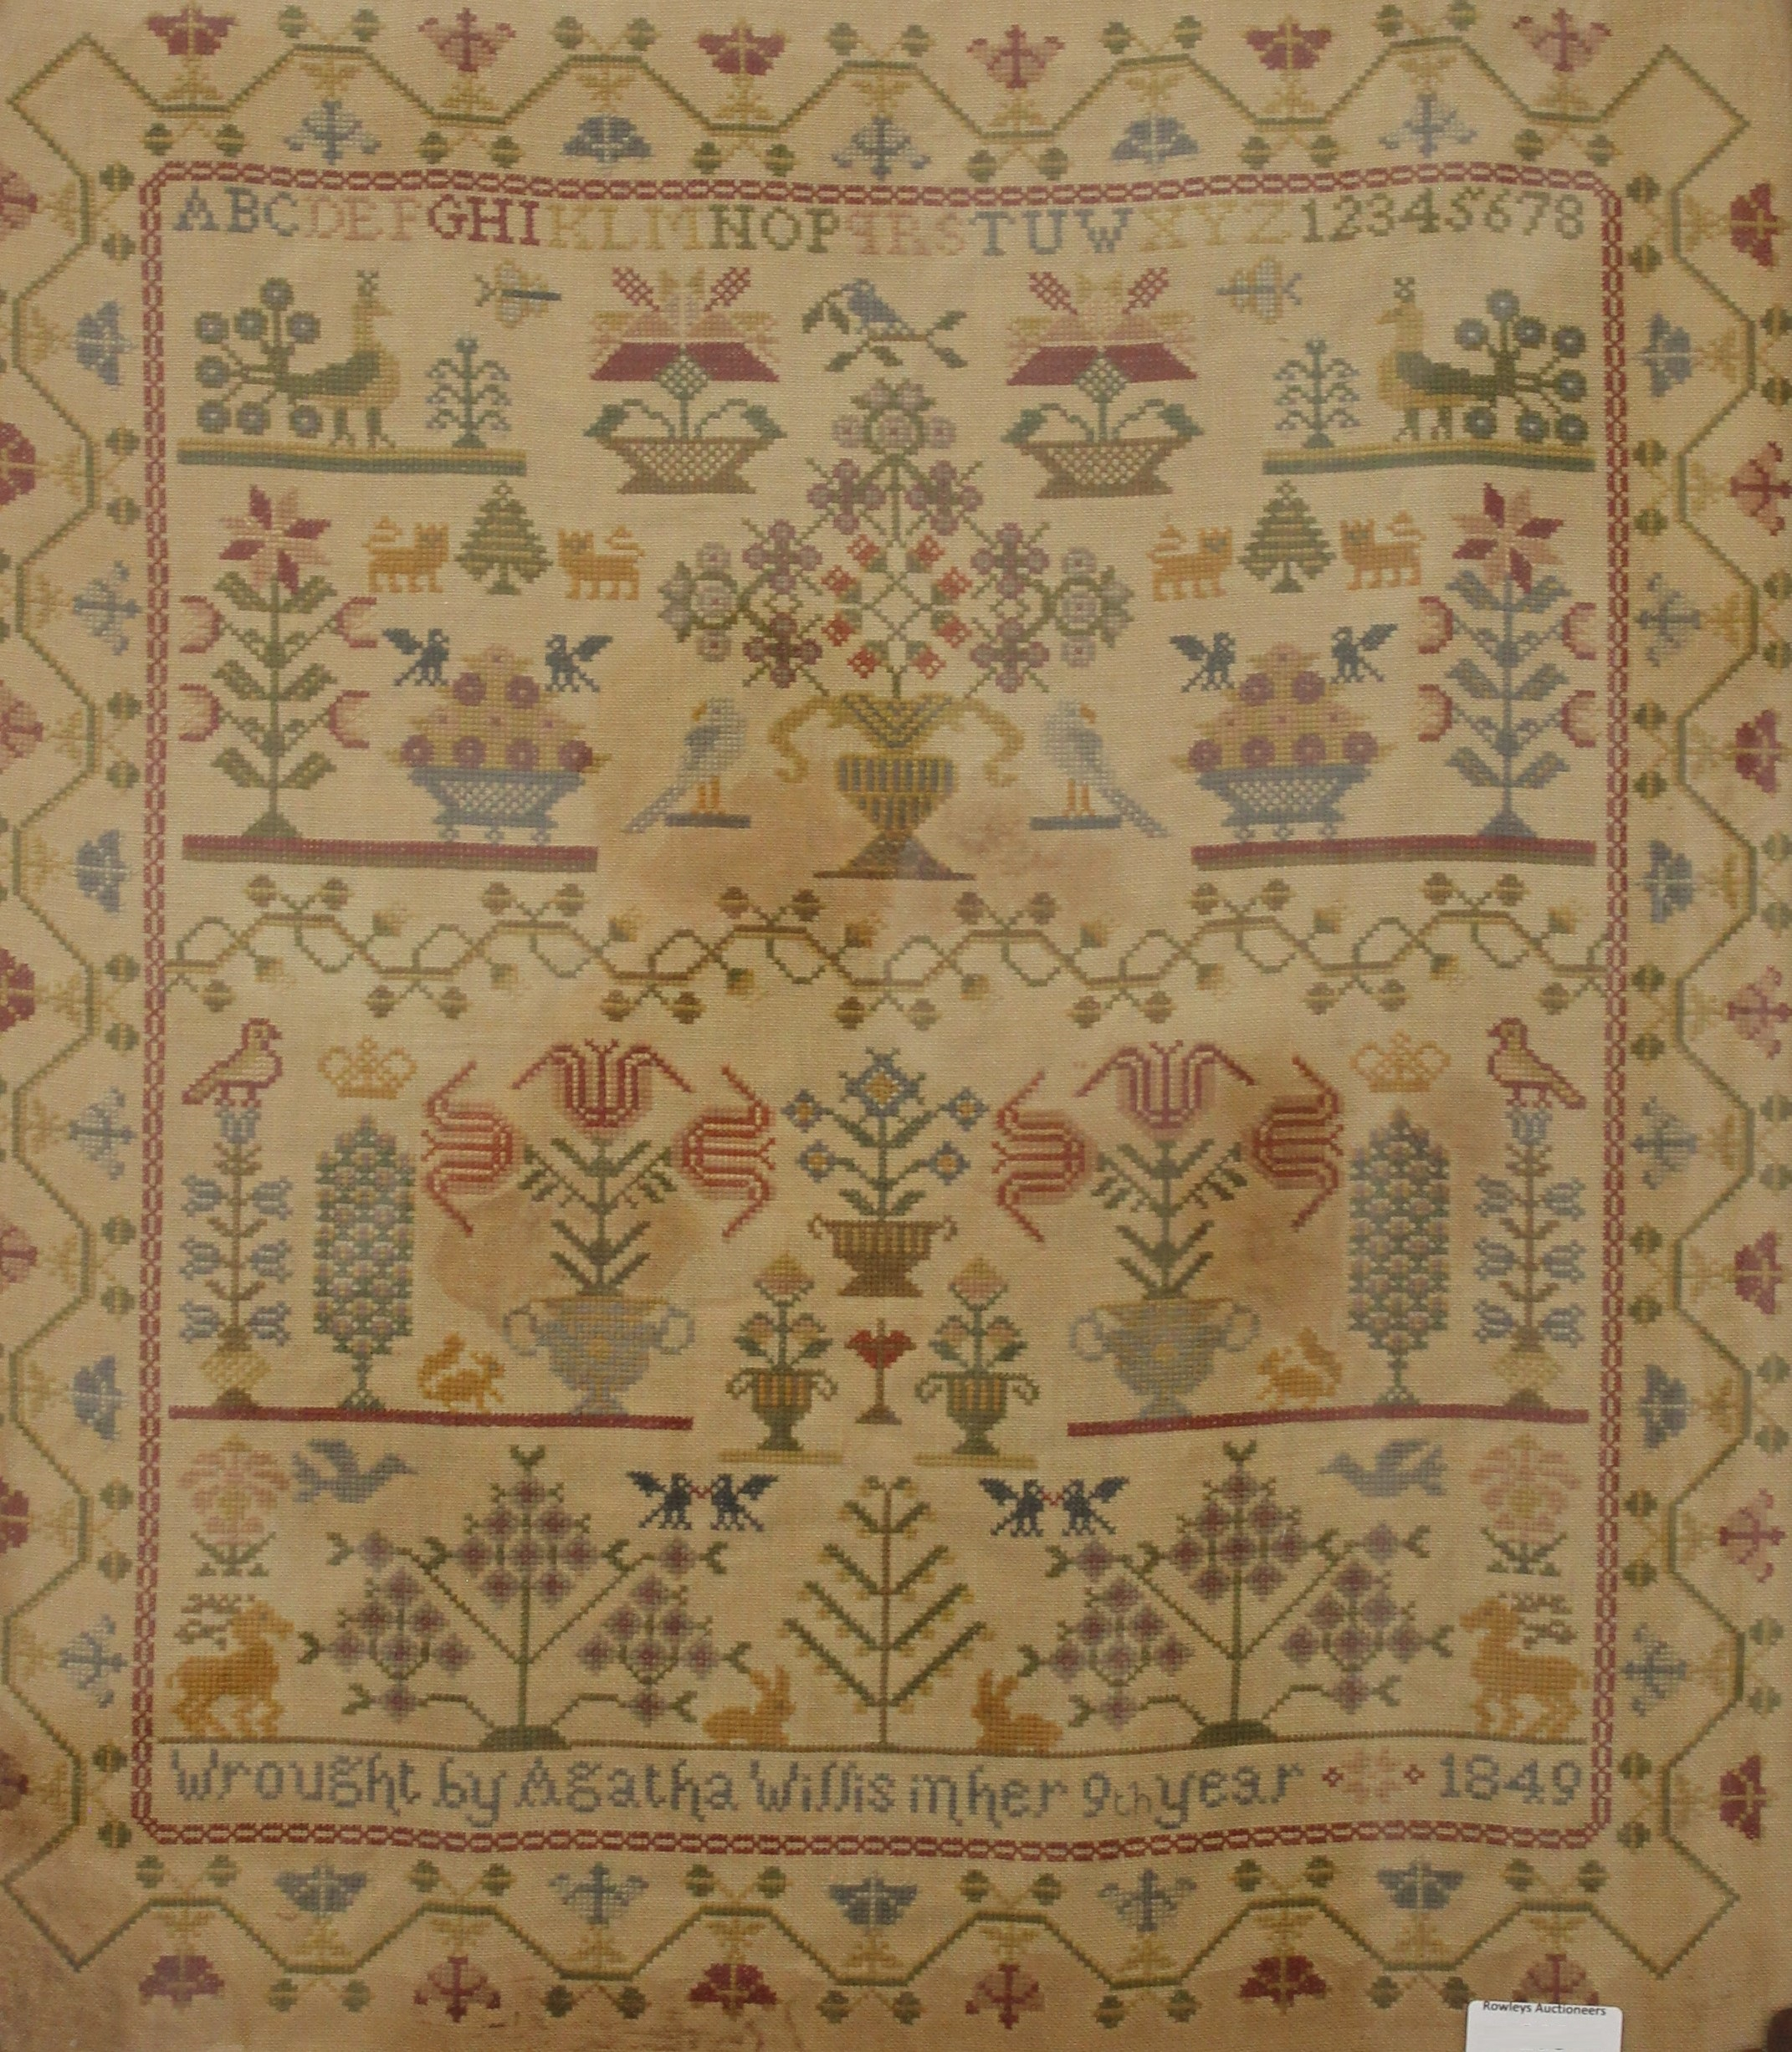 A Victorian sampler worked by Agatha Willis, Aged 9, dated 1849, framed and glazed. - Image 2 of 2